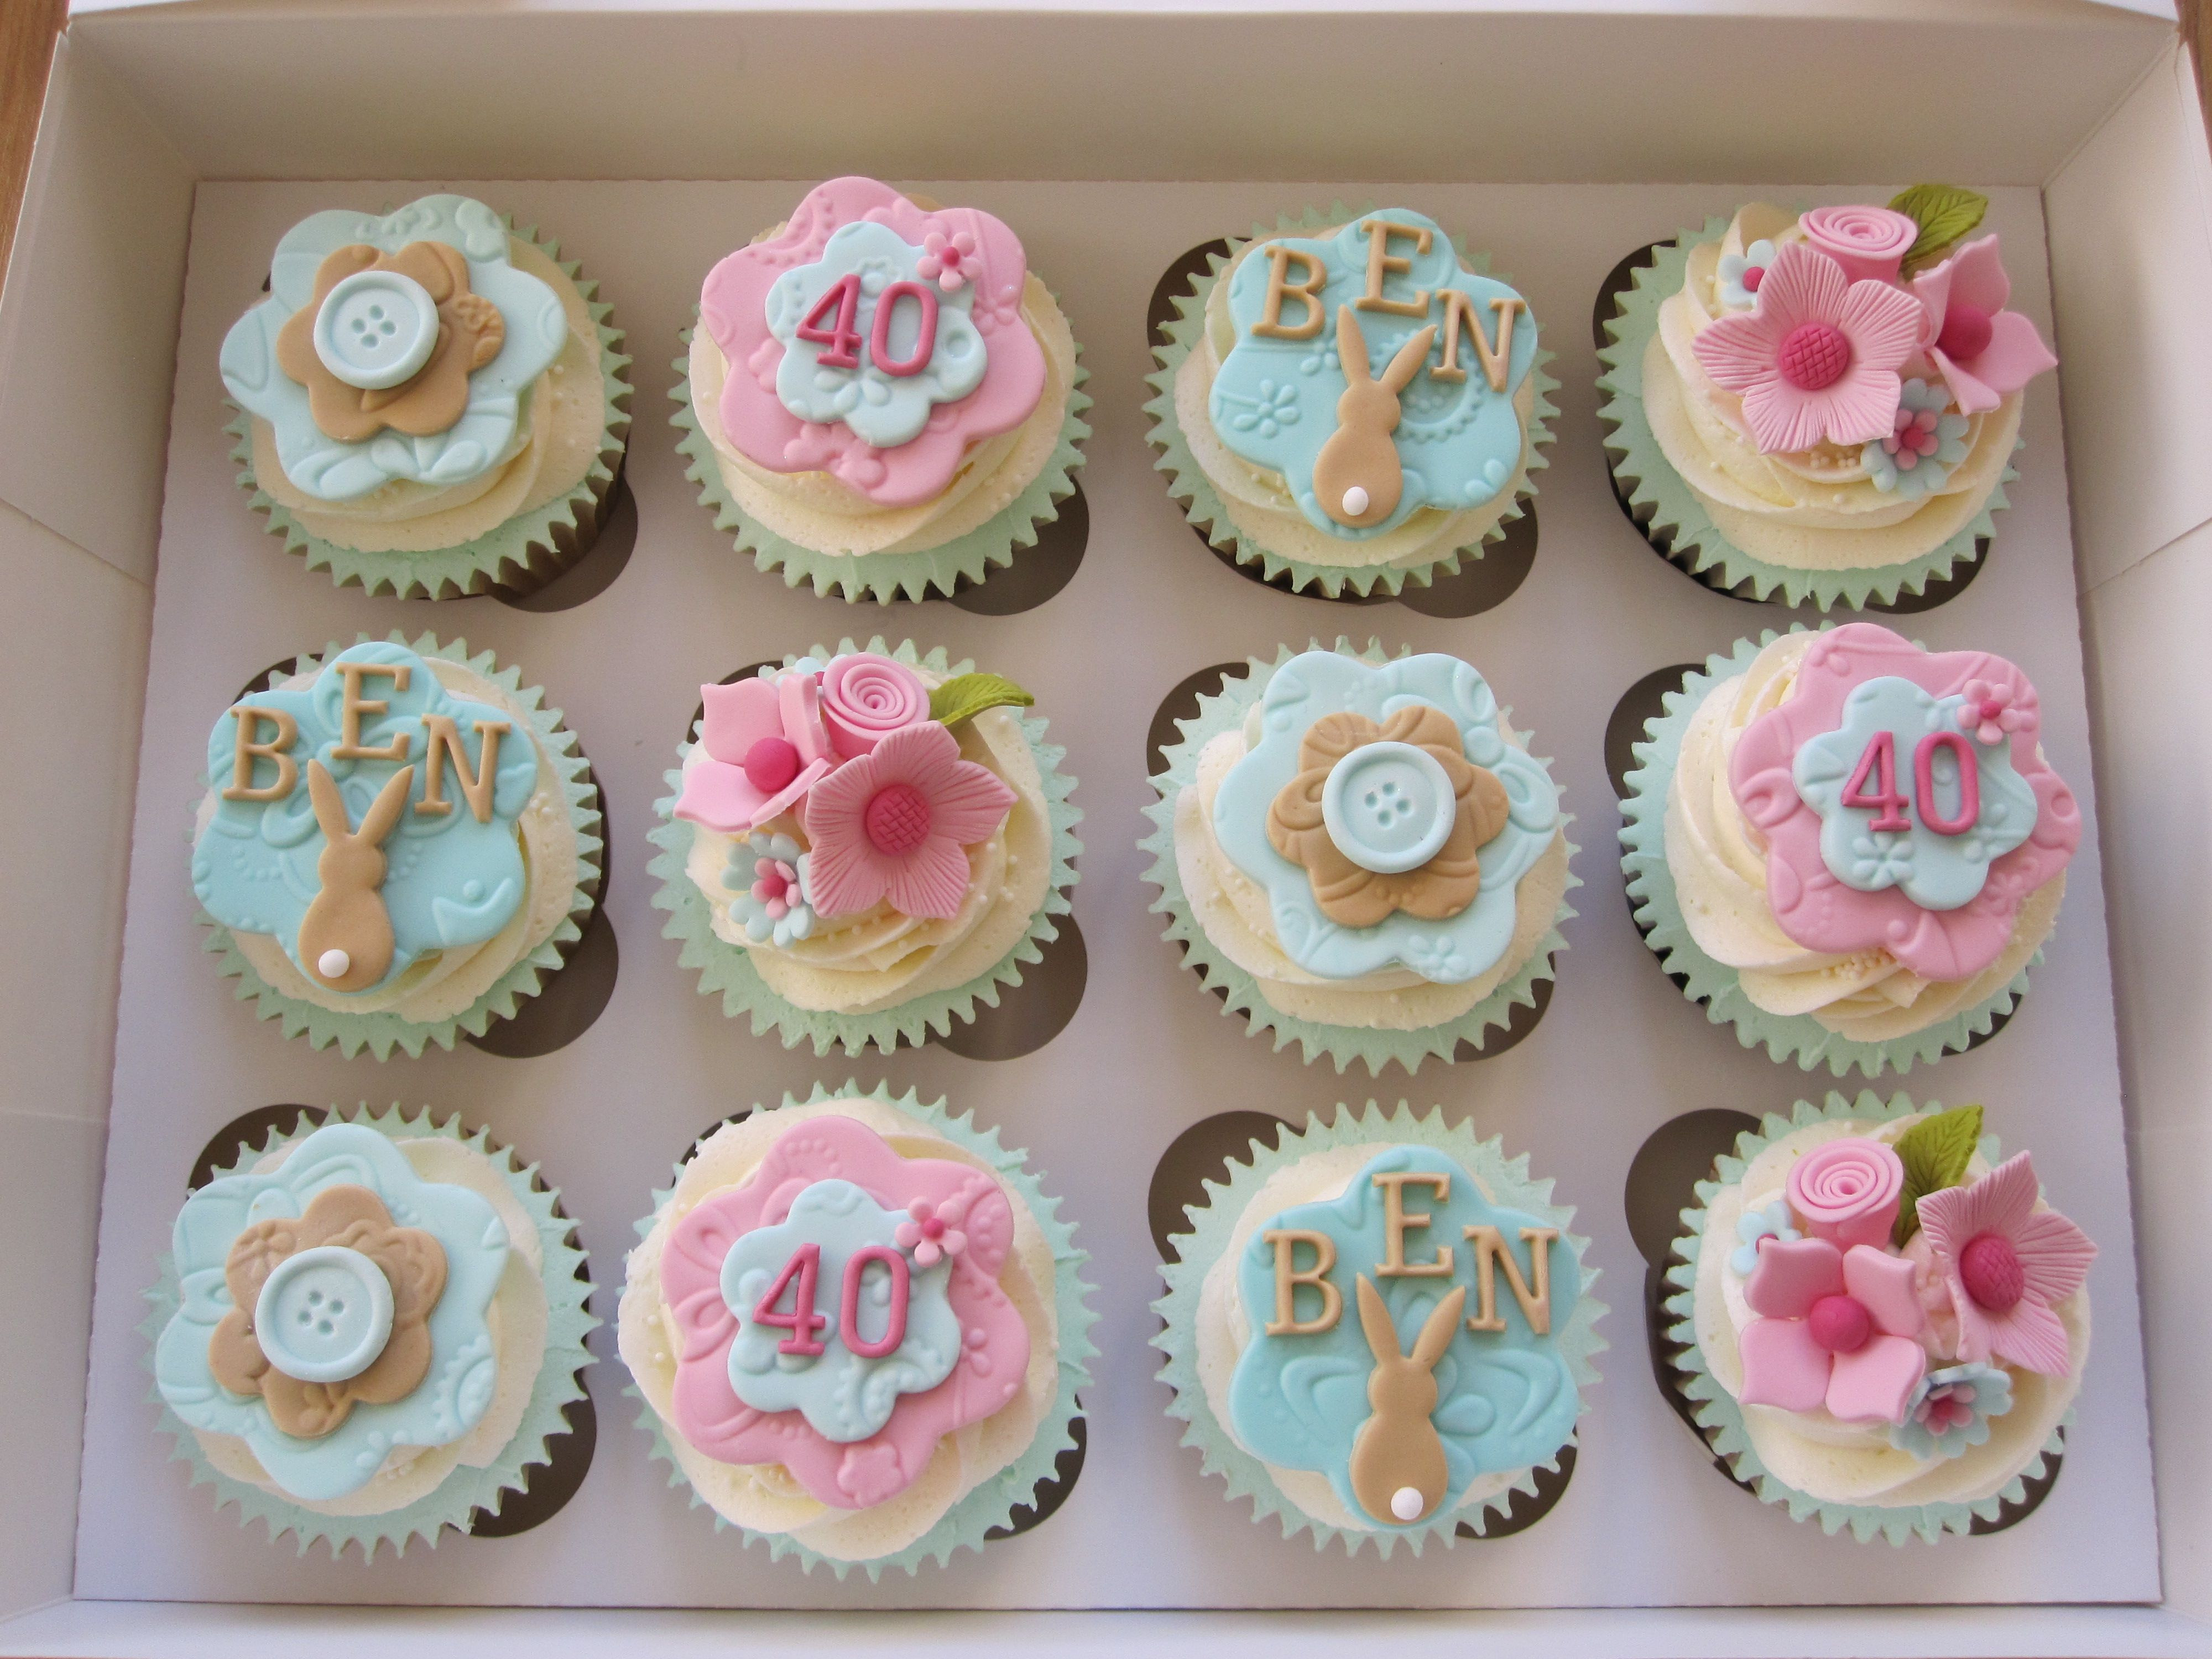 40Th Birthday Cupcakes Ideas  Cupcakes made for a lady who was celebrating her 40th